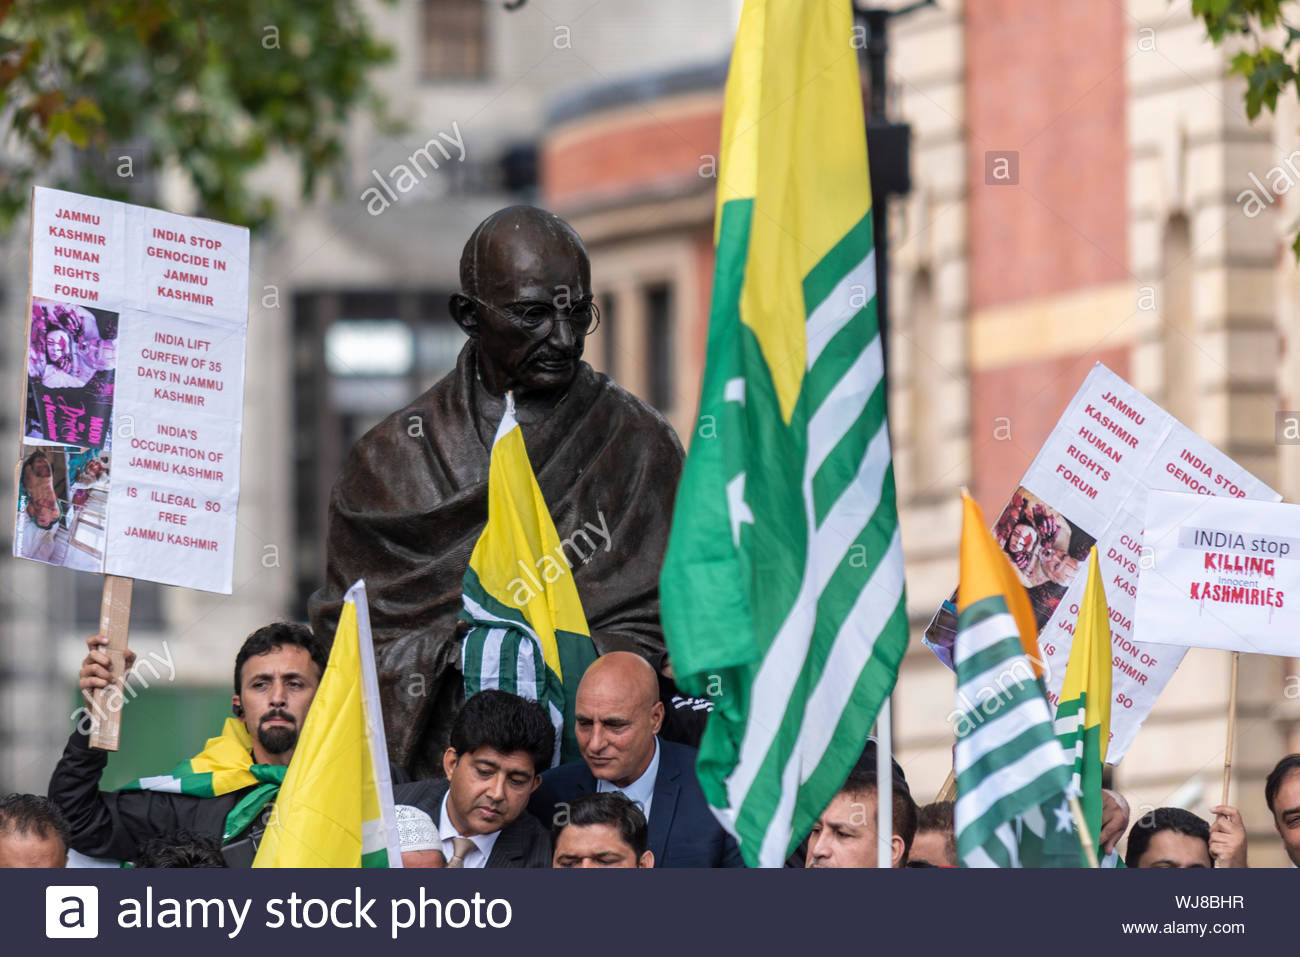 Westminster, London, UK. 3rd September 2019. A protest is taking place demonstrating against the Indian occupation of Jammu and Kashmir, claiming that thousands have been killed and injured by the Indian armed forces. On 5th August Article 370 – which protected the rights of the population of the area – was revoked by the BJP government. Credit: Avpics/Alamy Live News - Stock Photo